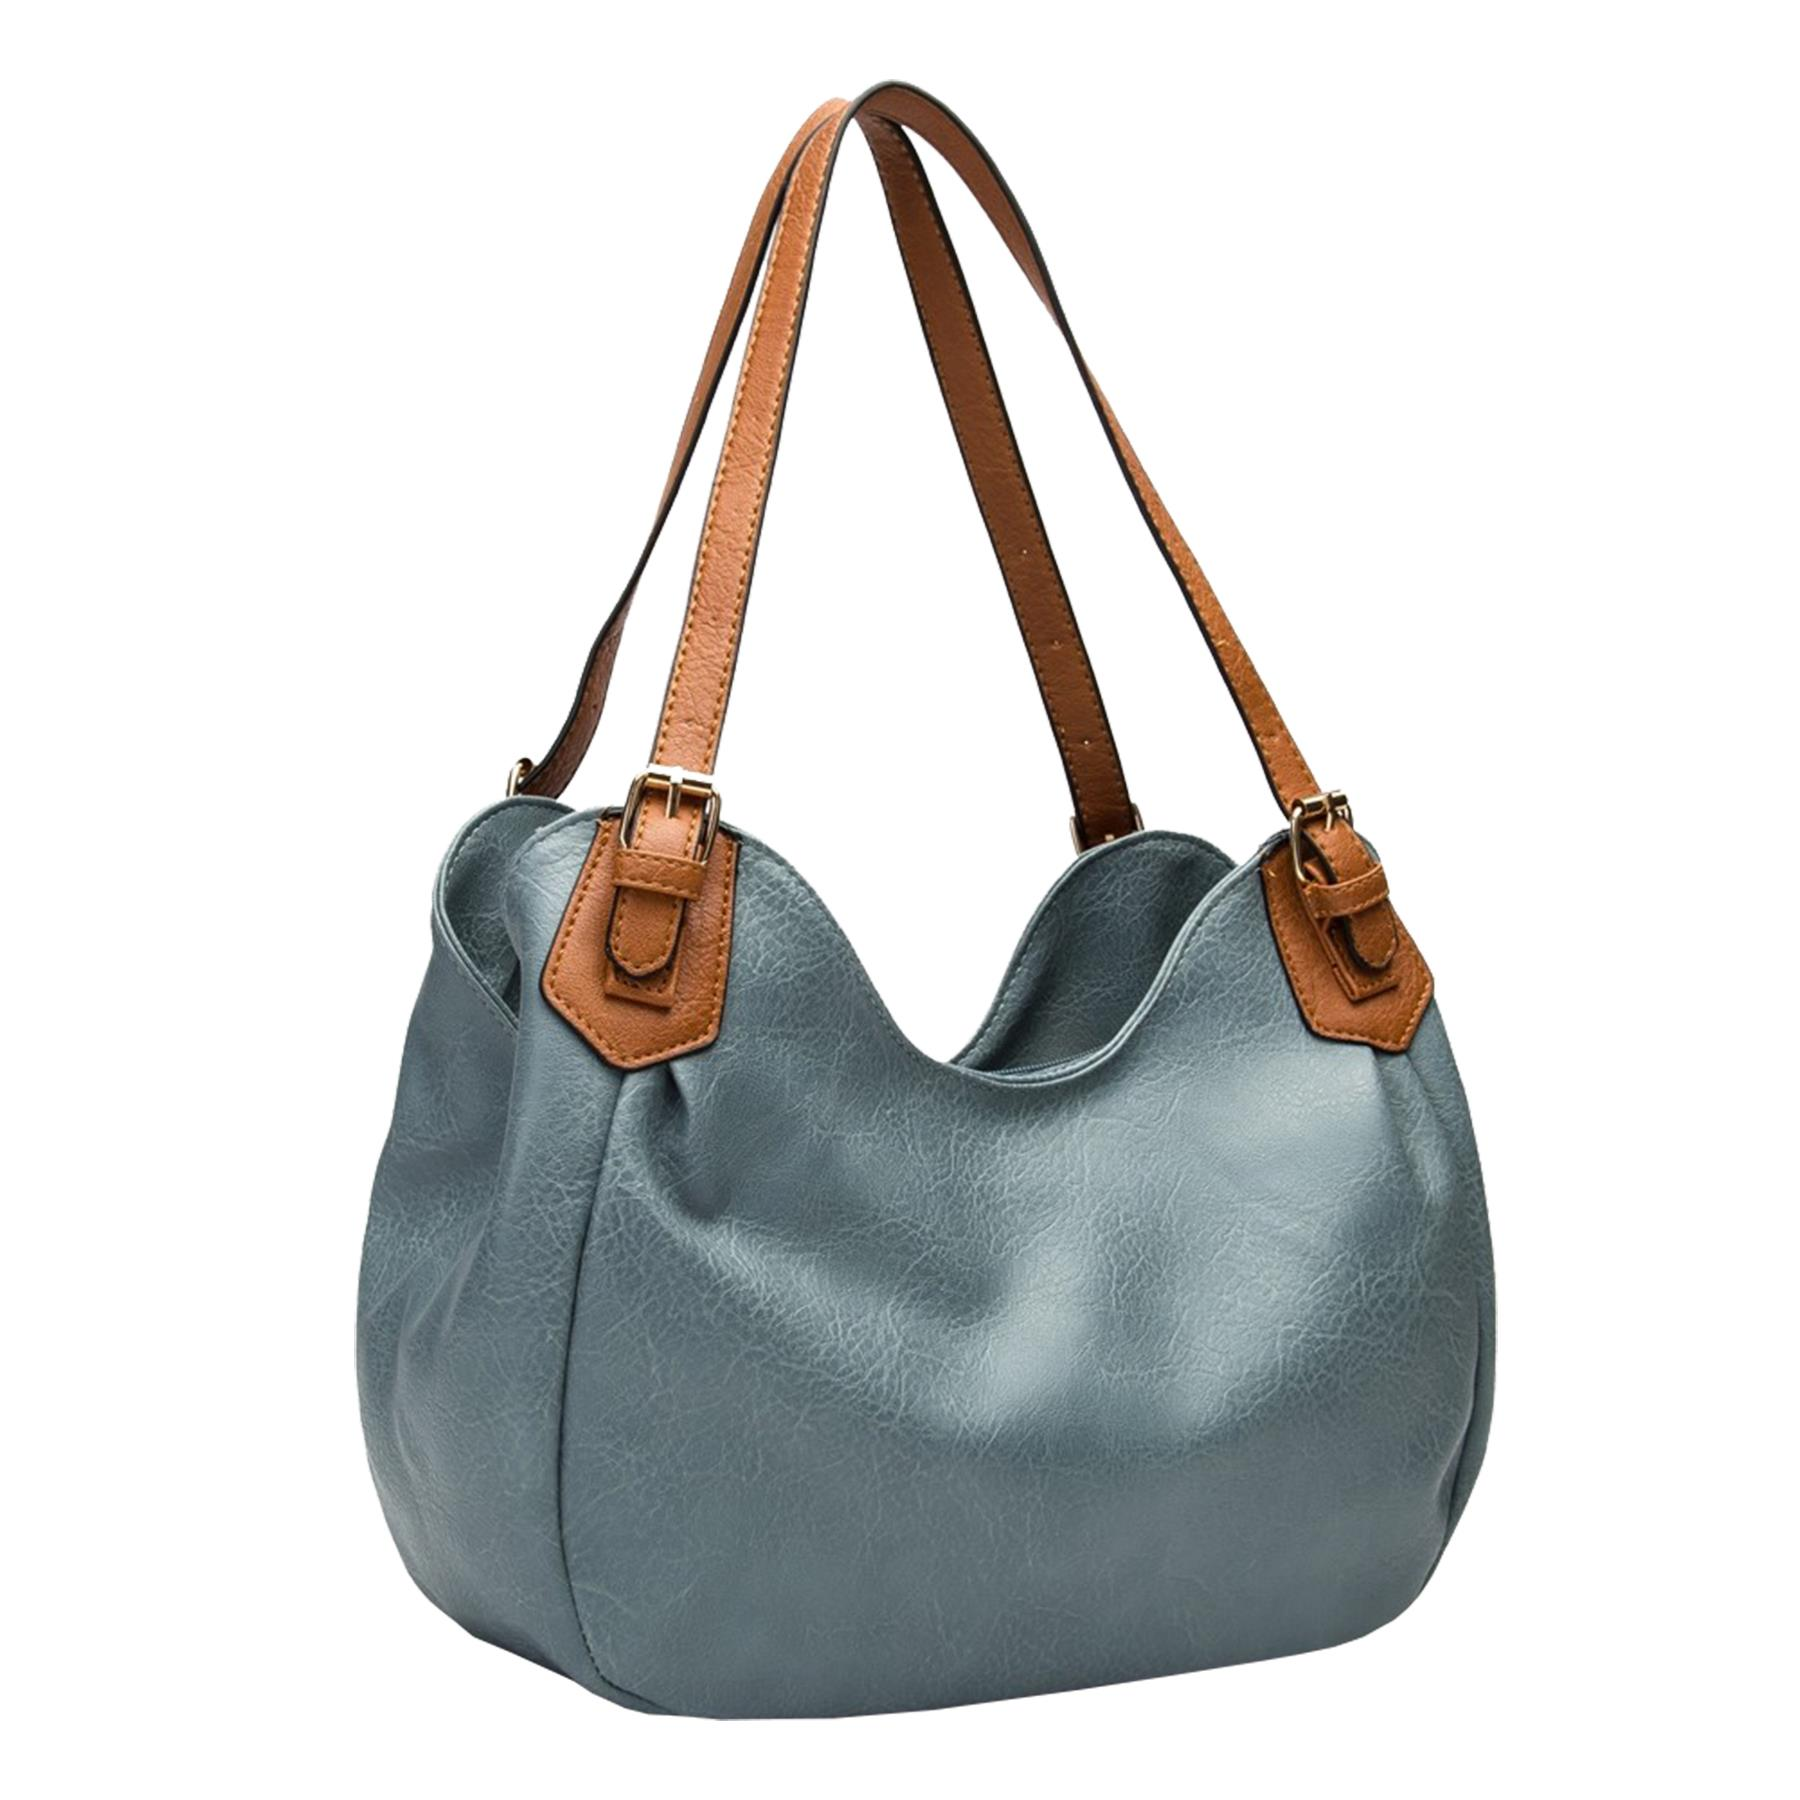 New-Ladies-Buckled-Straps-Two-Toned-Faux-Leather-Slouchy-Shoulder-Bag thumbnail 6